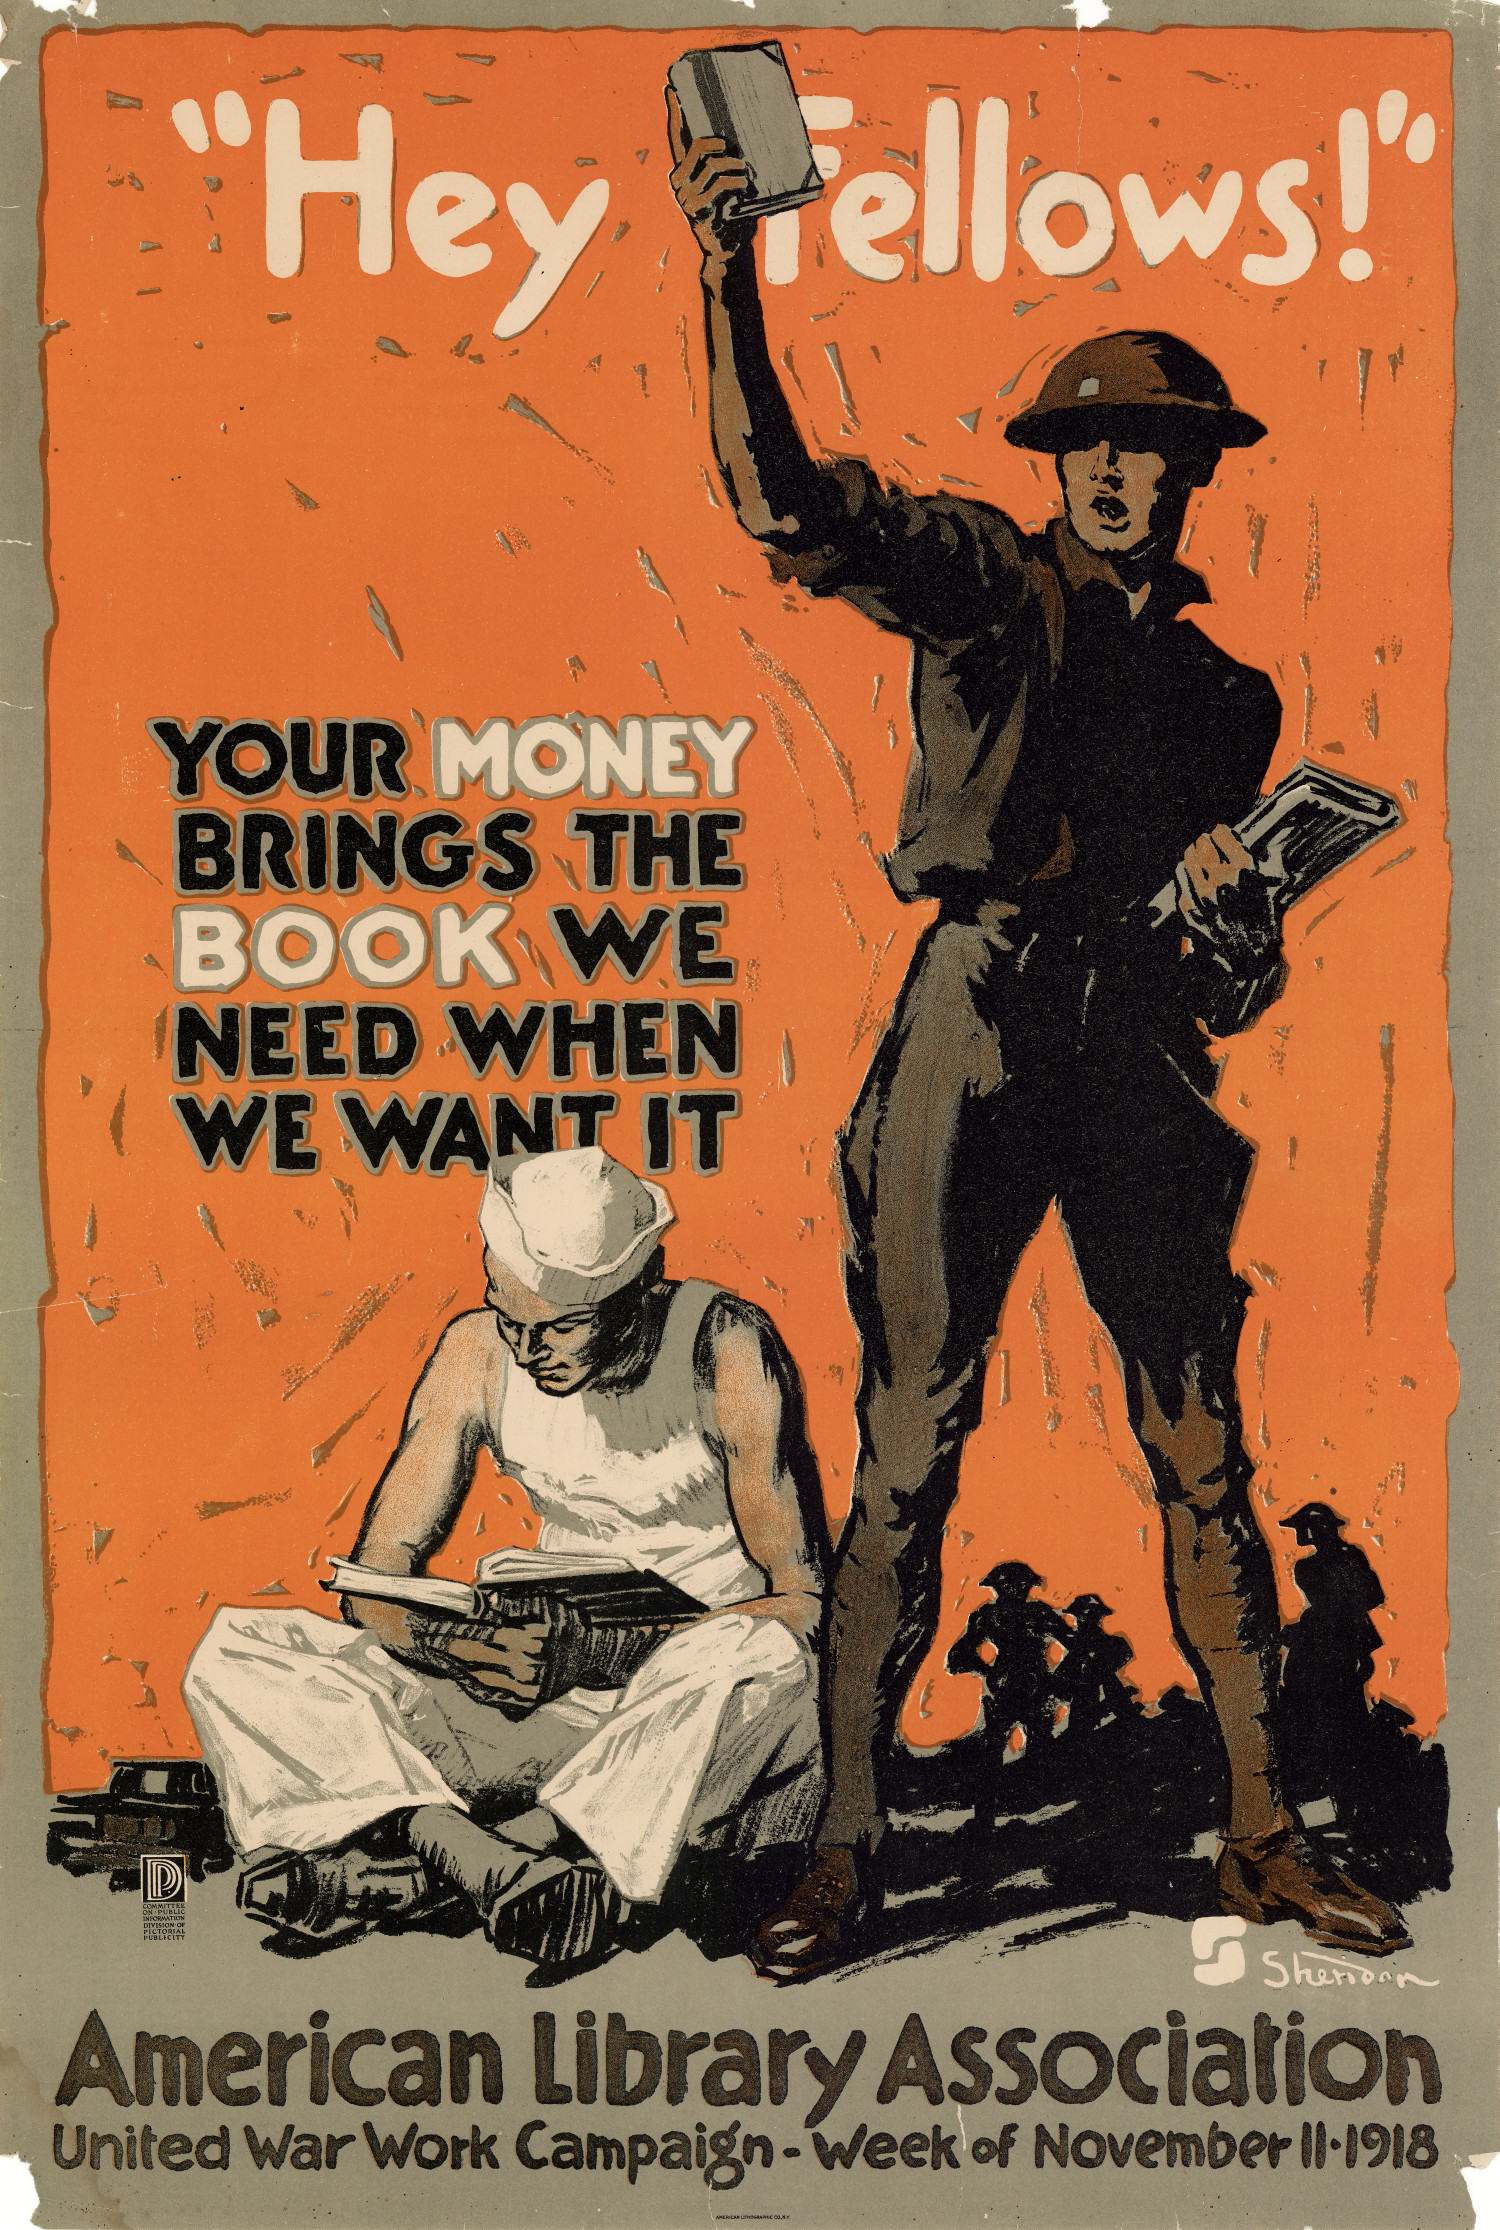 """Hey Fellows!"" Your money brings the book we need when we want it : American Library Association, United War Work Campaign, Week of November 11, 1918.                                                                                                      [Sequence #]: 1 of 1"